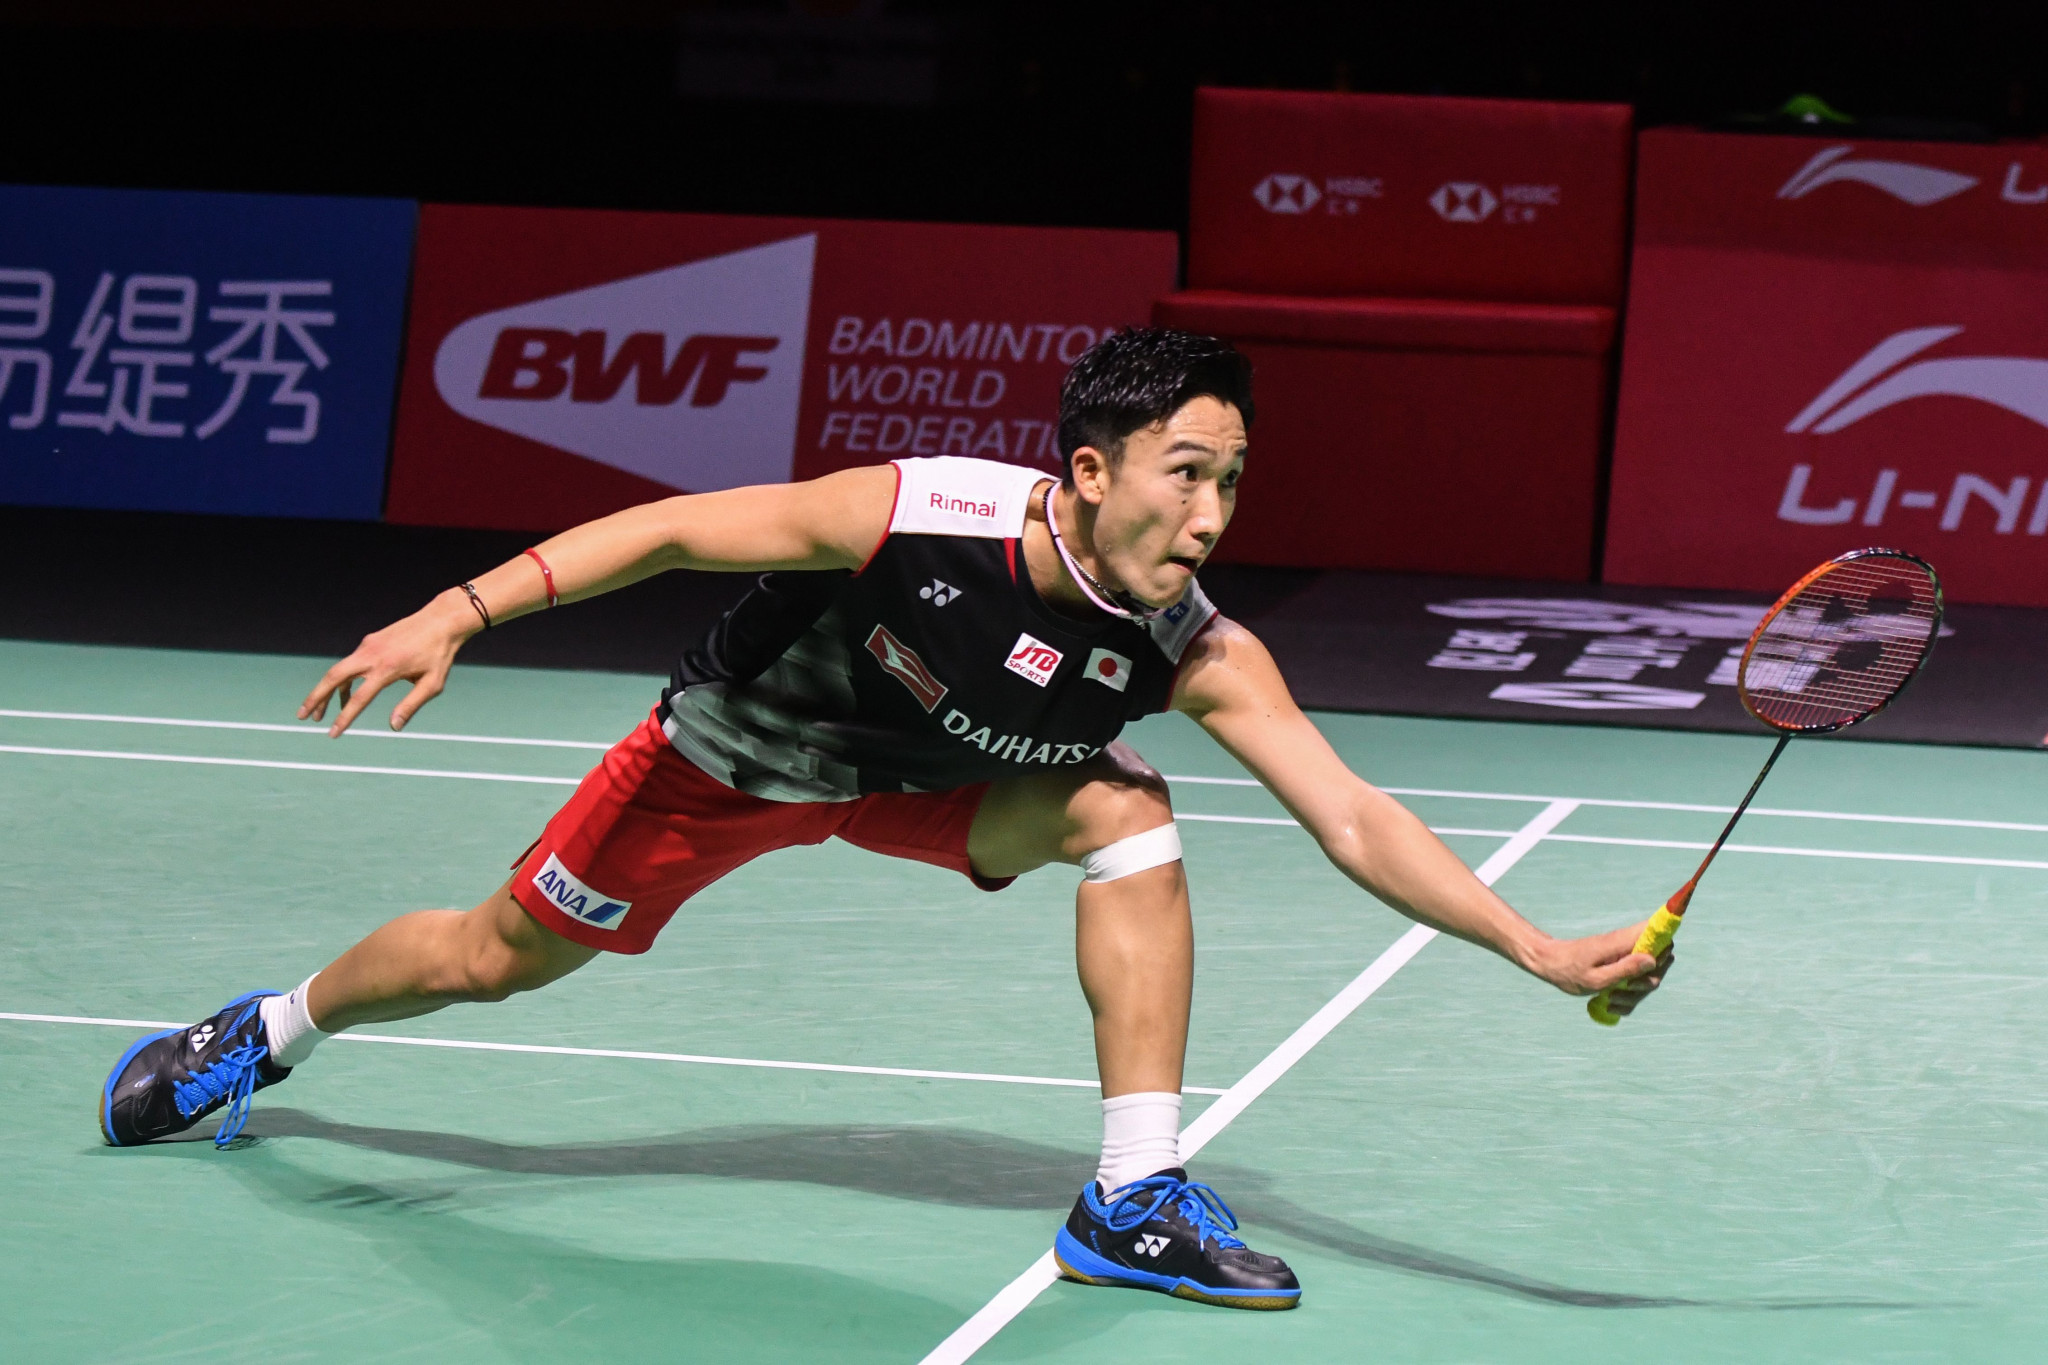 Kento Momota, Japan's world number one, has a point to prove at the BWF World Tour Finals in Guangzhou ©Getty Images